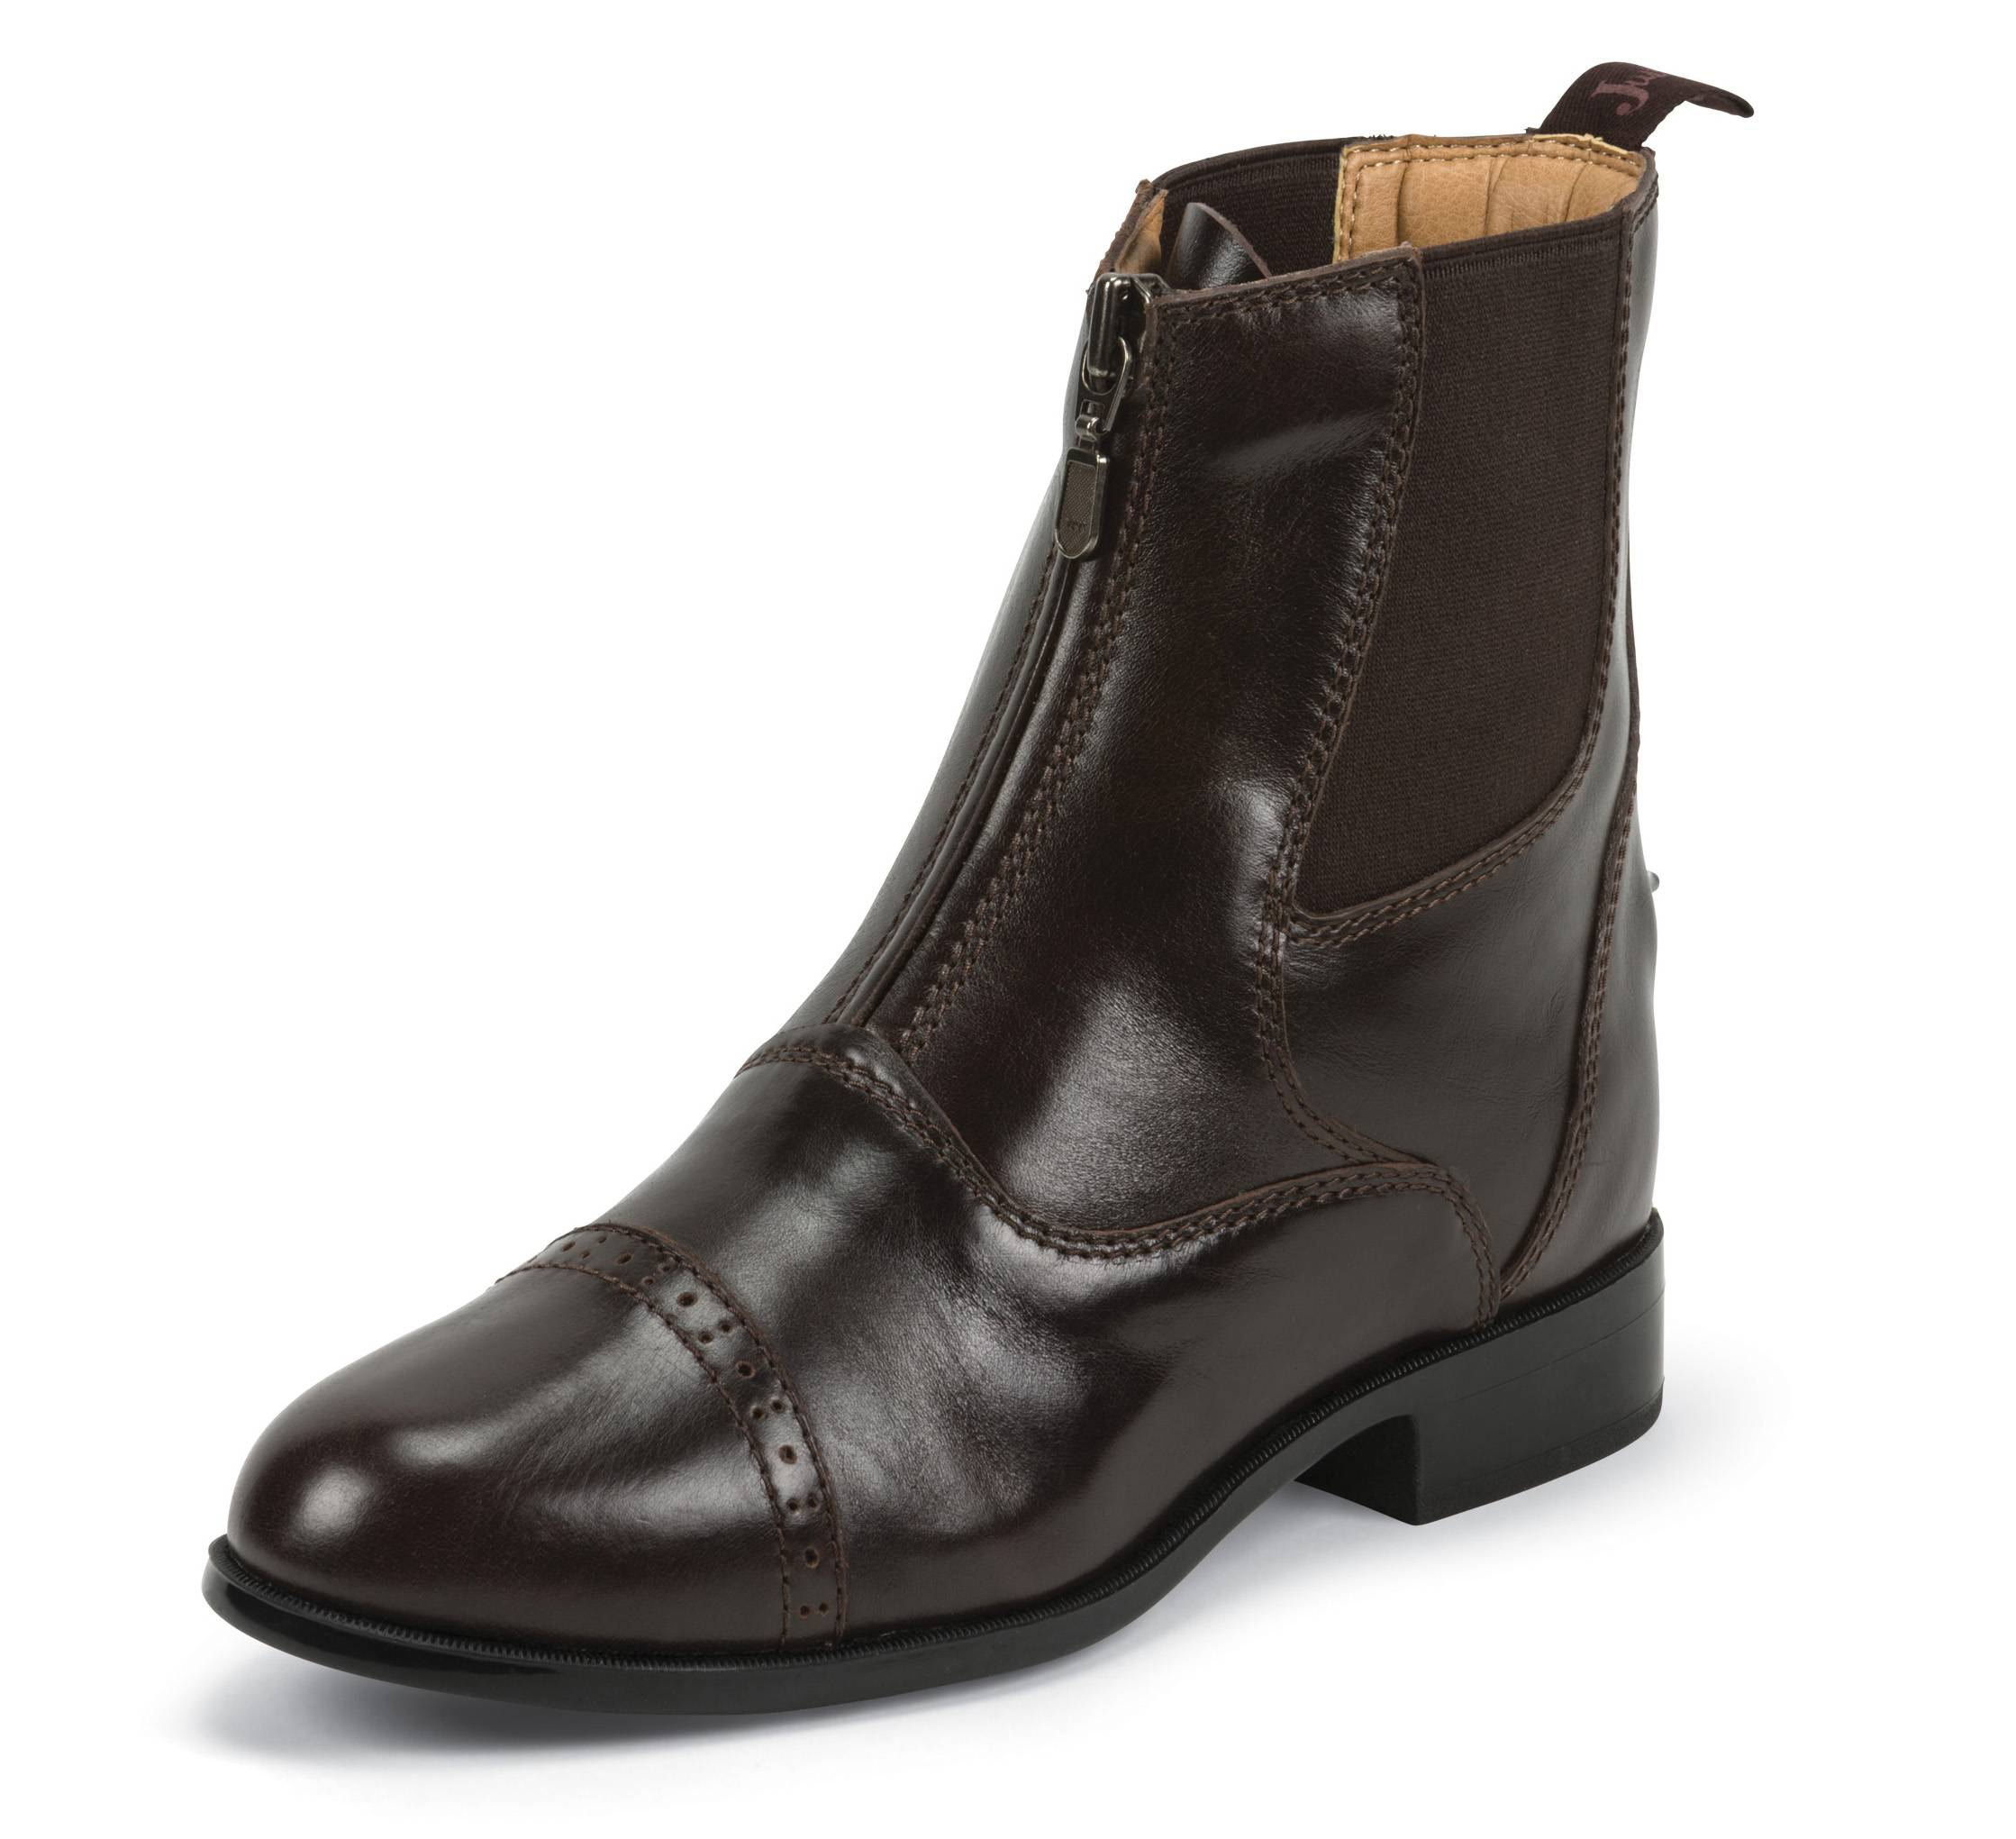 Justin Zip Paddock Boots - Ladies - Chocolate Brown